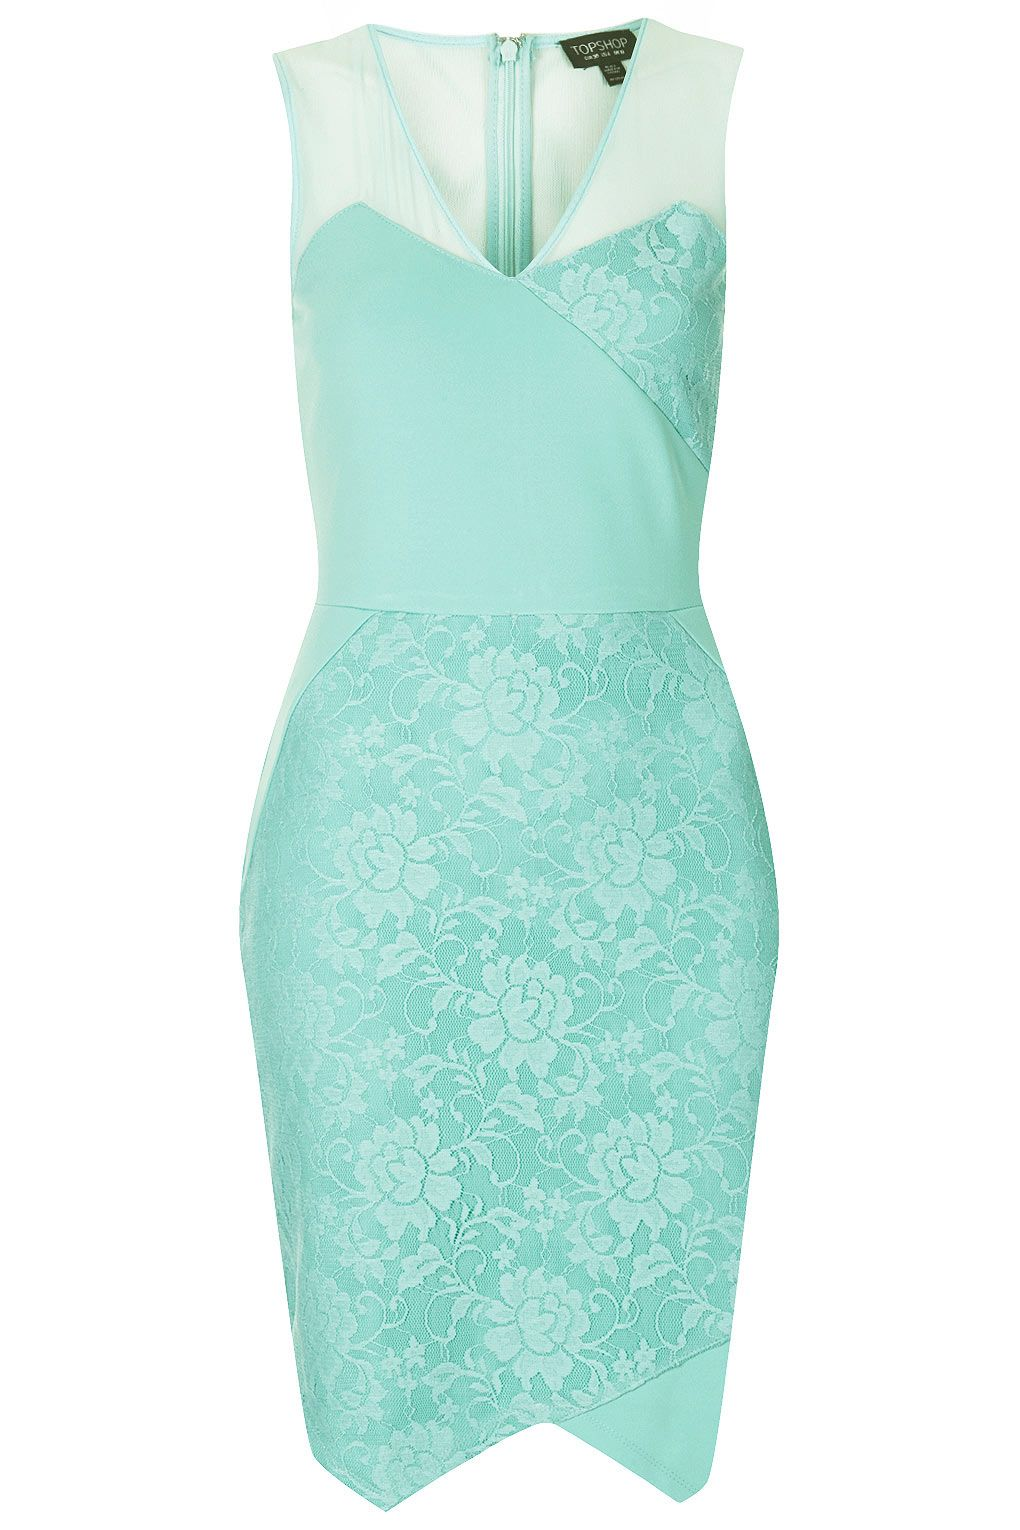 V Lace Applique Bodycon Dress - New In This Week - New In - Topshop ...